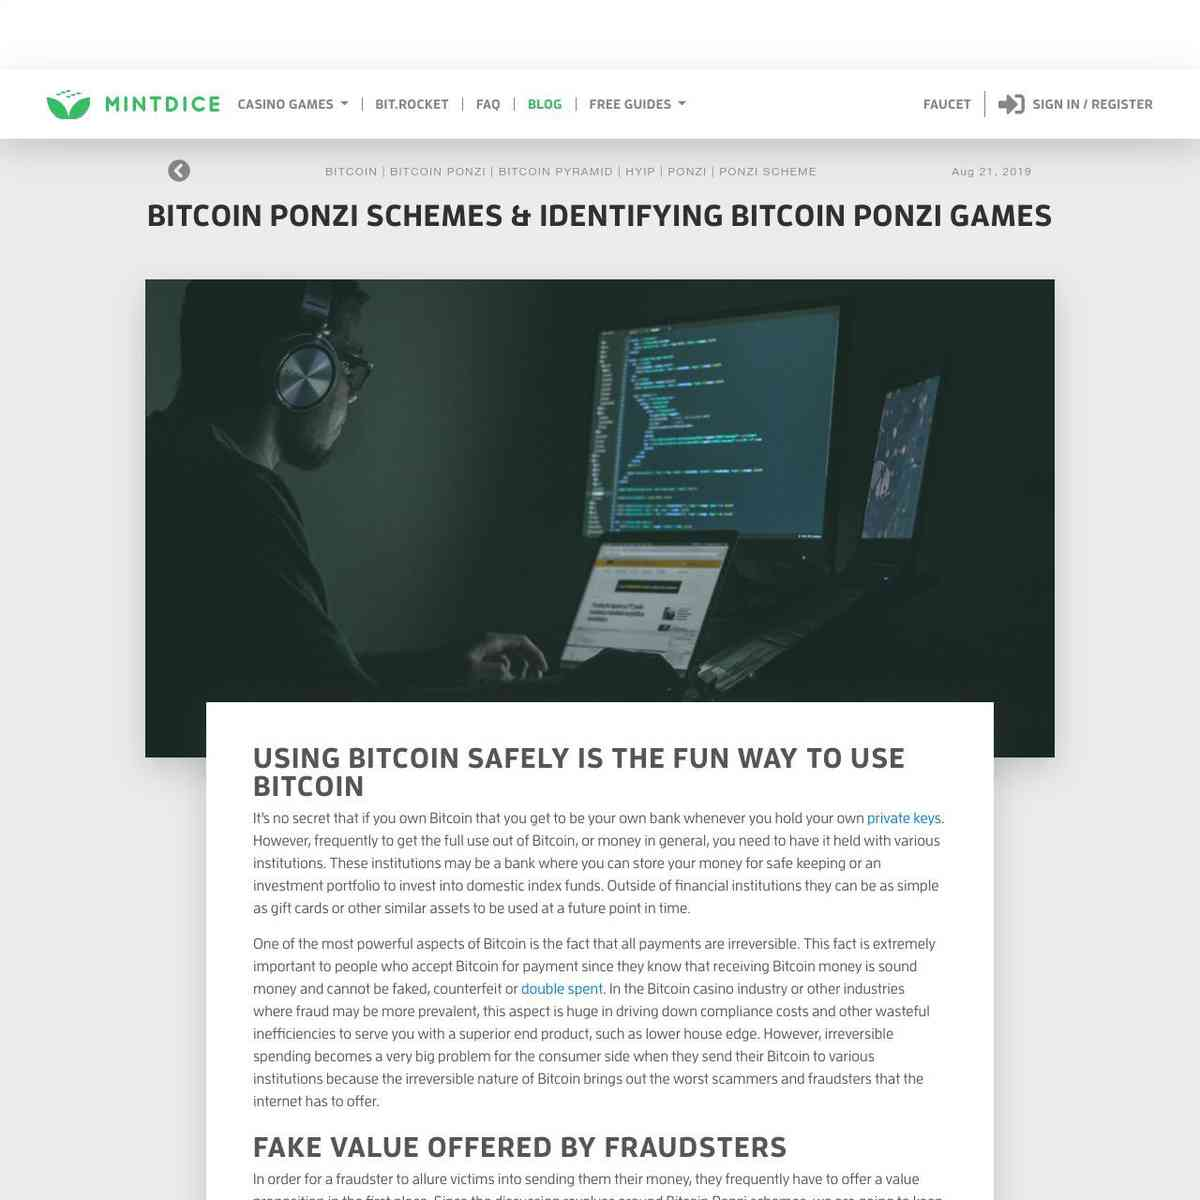 Bitcoin Ponzi Schemes & Identifying Bitcoin Ponzi Games